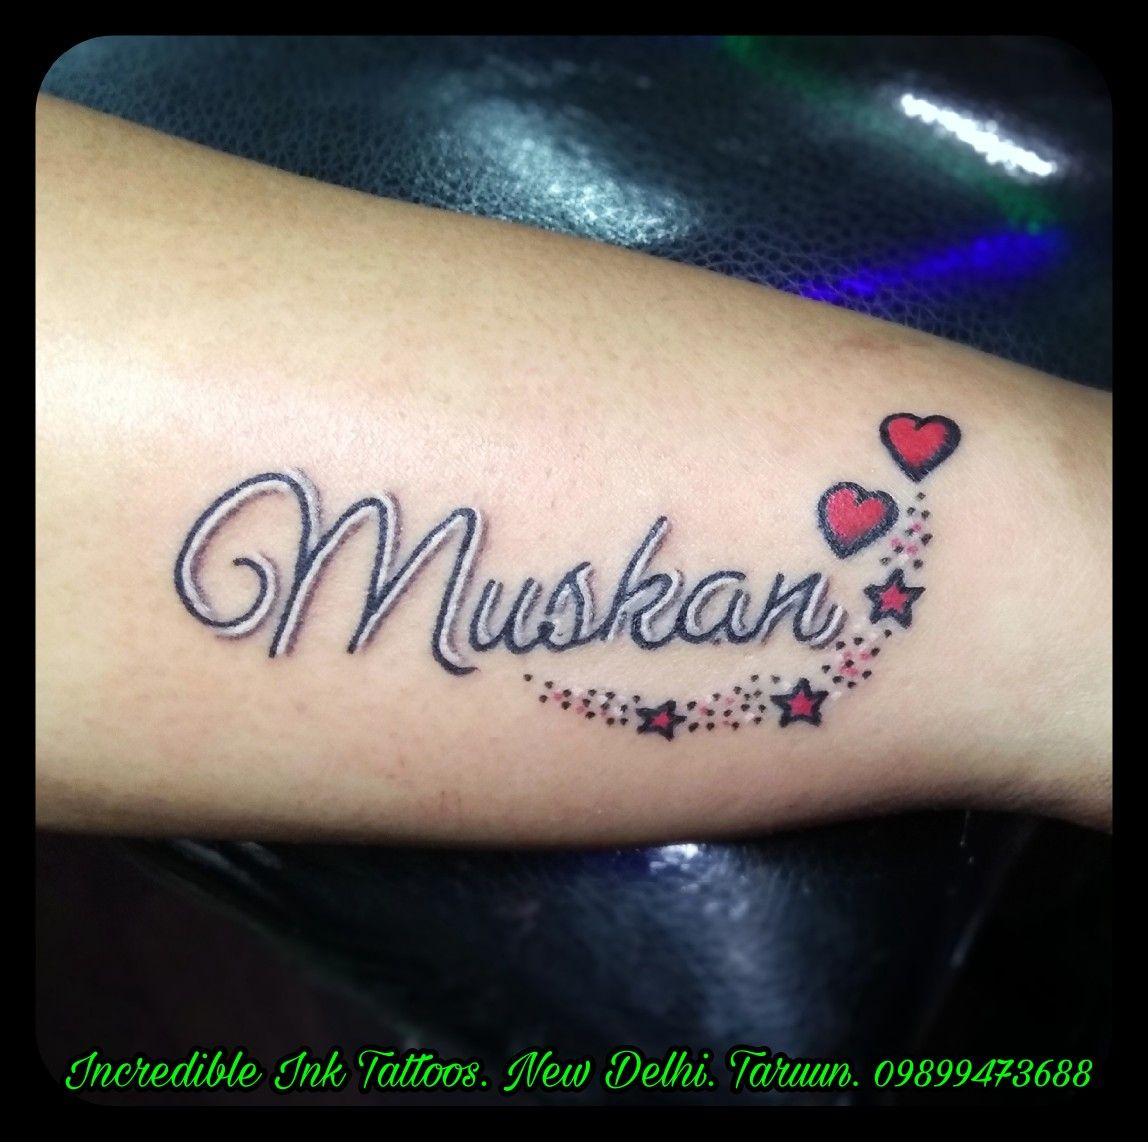 Muskan Name Tattoo Muskan Name Tattoo Call Whatsapp 09899473688 Name Tattoos Name Tattoo Tattoos